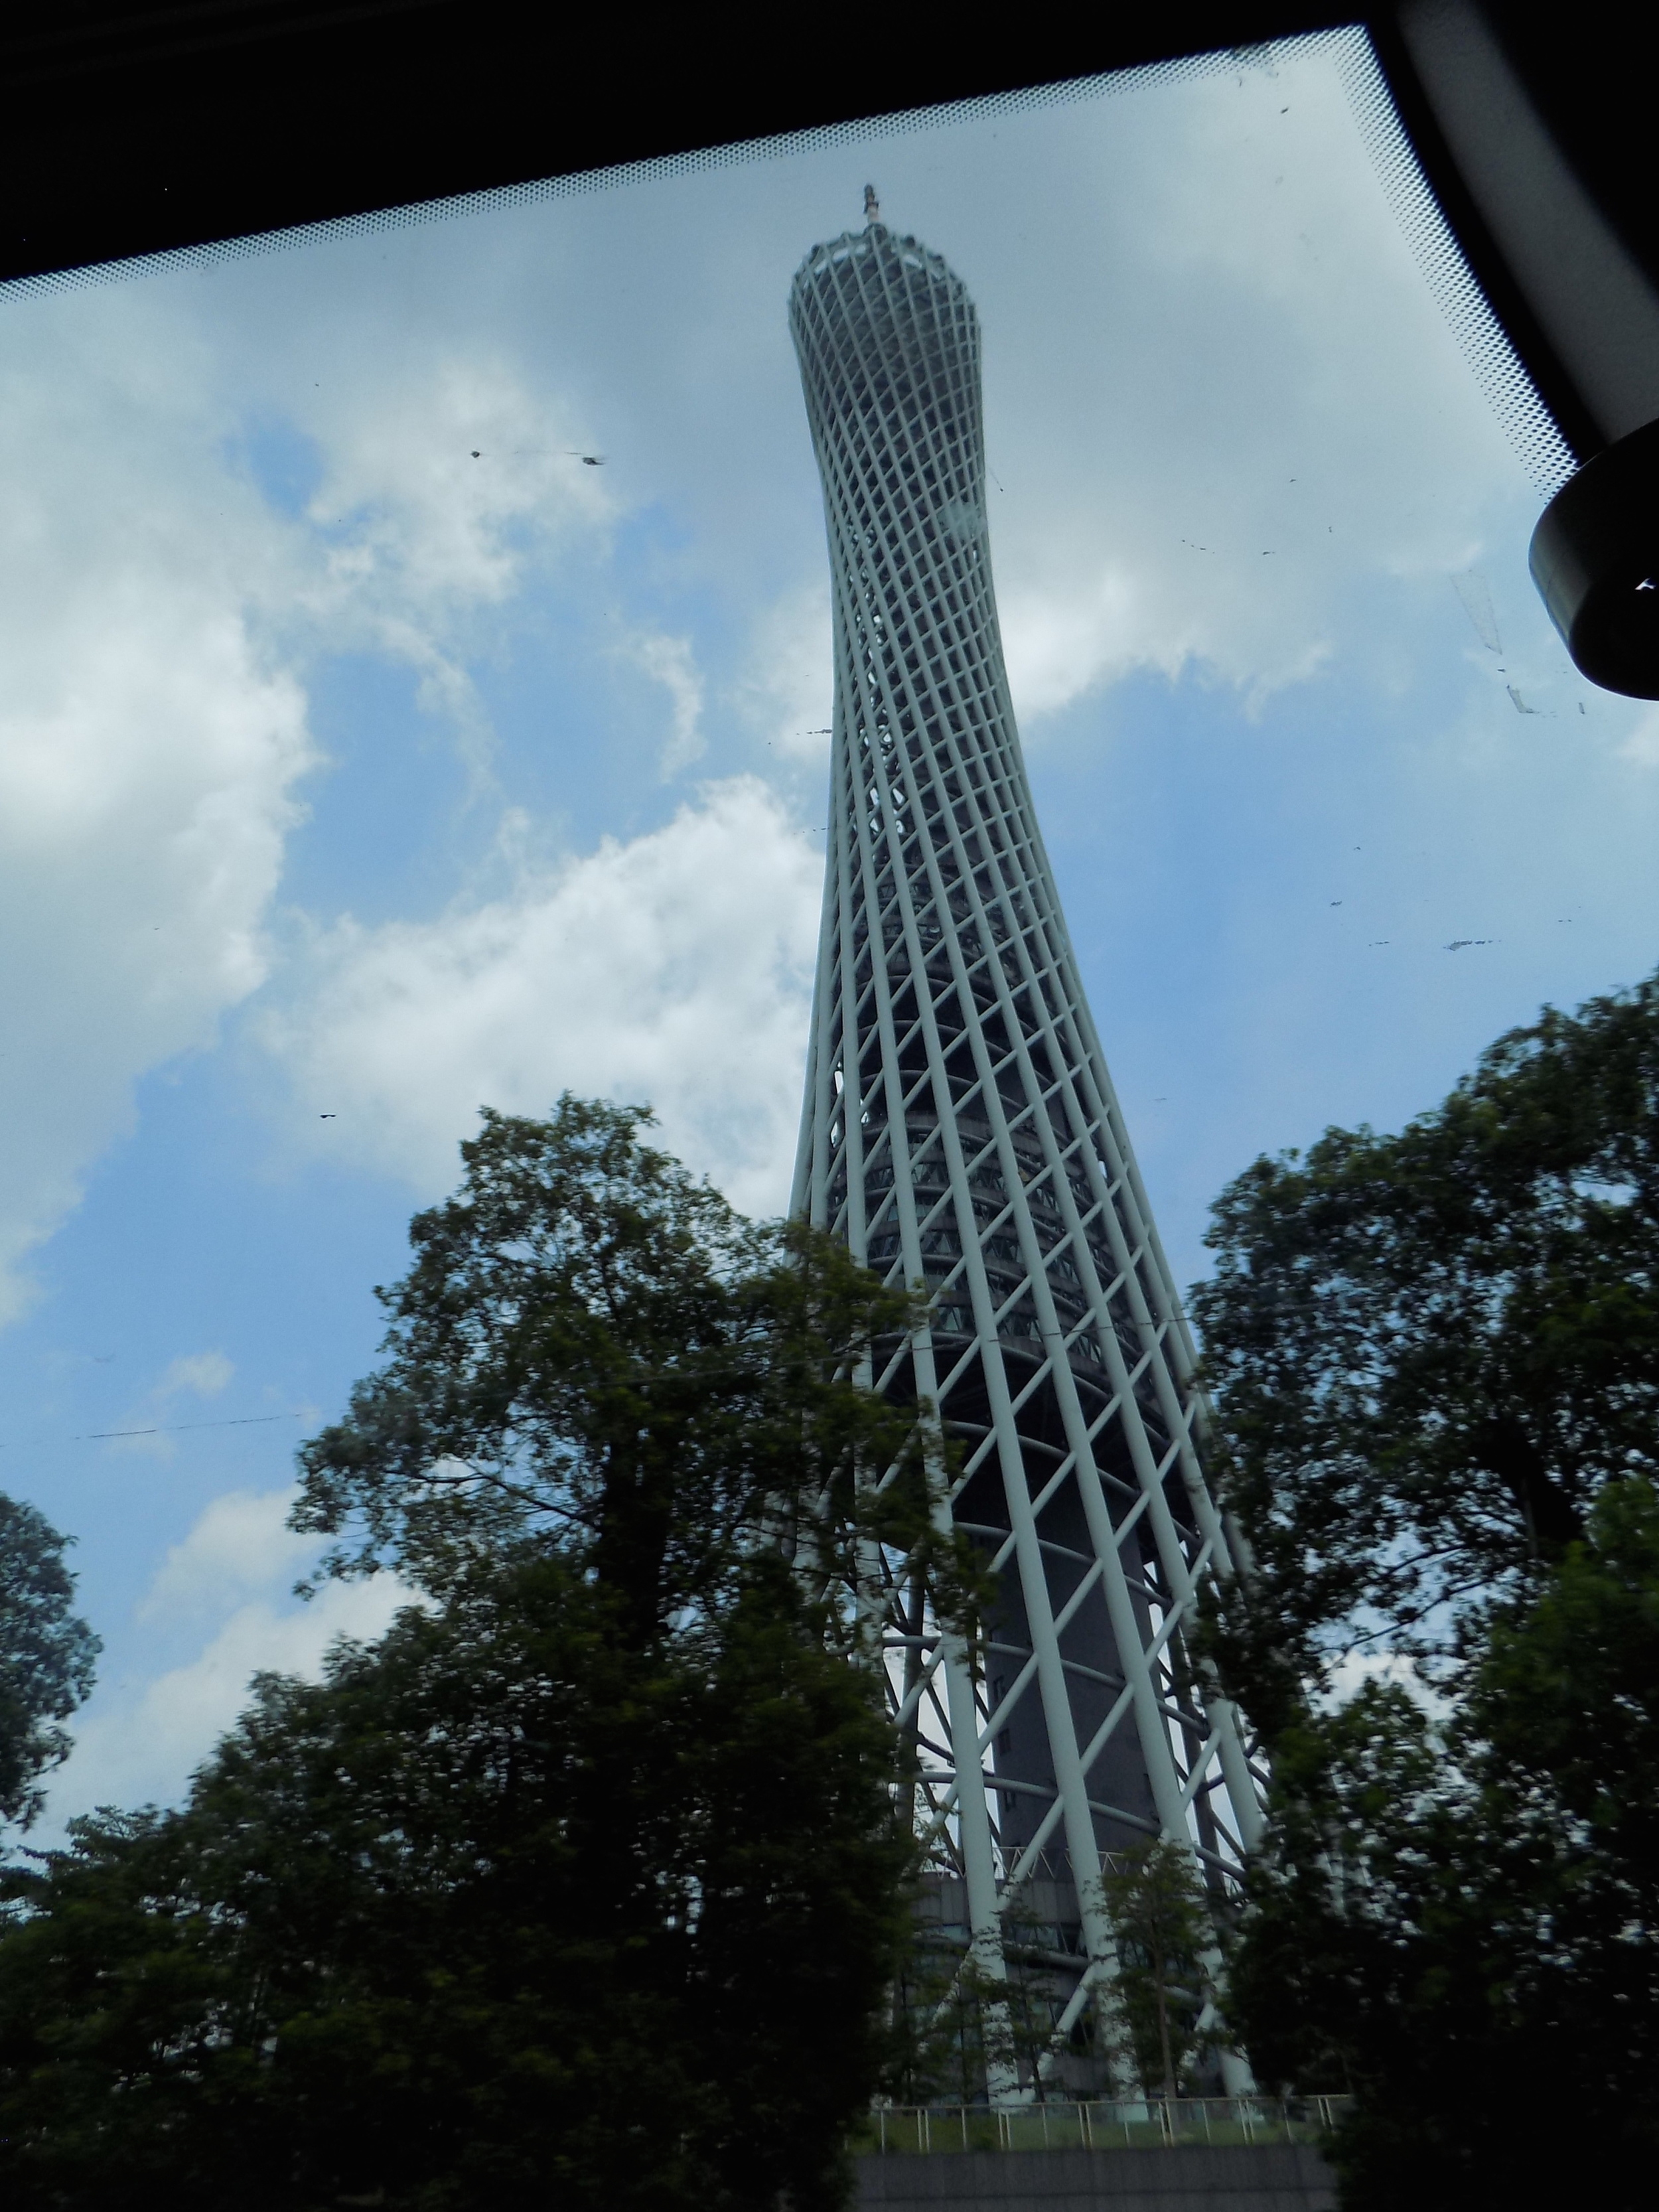 Canton Tower in China - tallest radio tower in the world